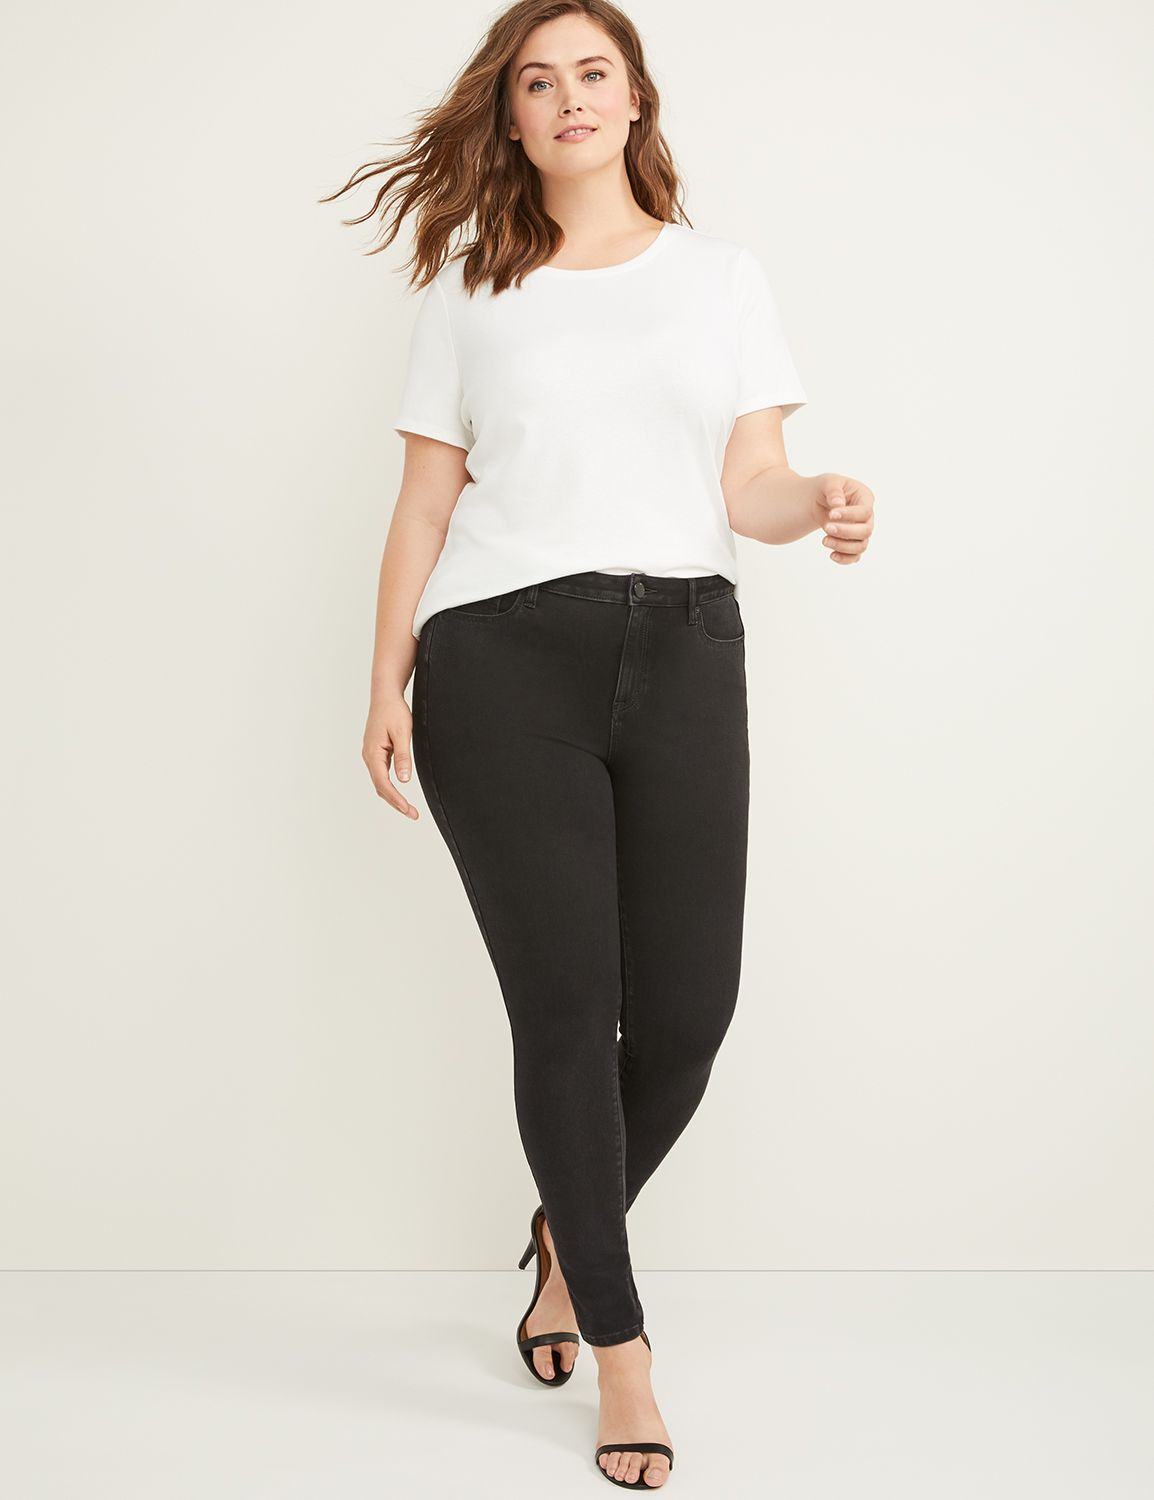 Plus Size Tall Jeans For Women